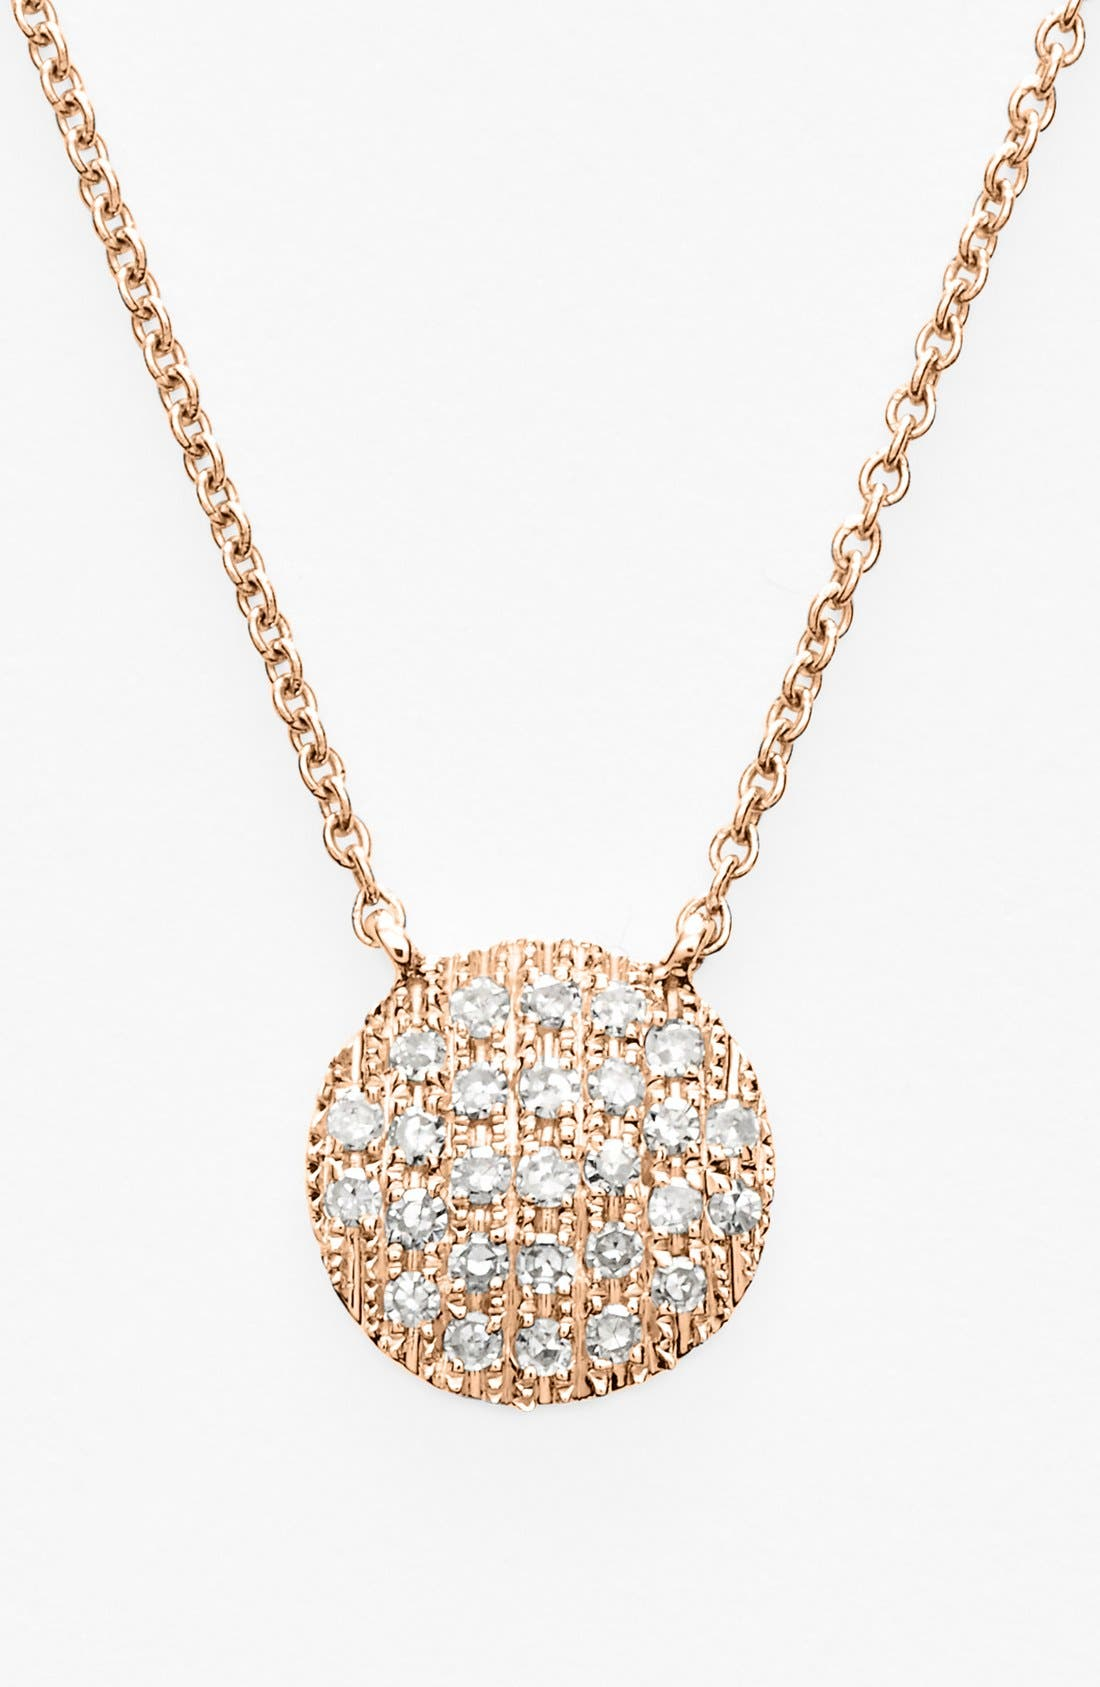 Dana Rebecca Designs 'Lauren Joy' Diamond Disc Pendant Necklace